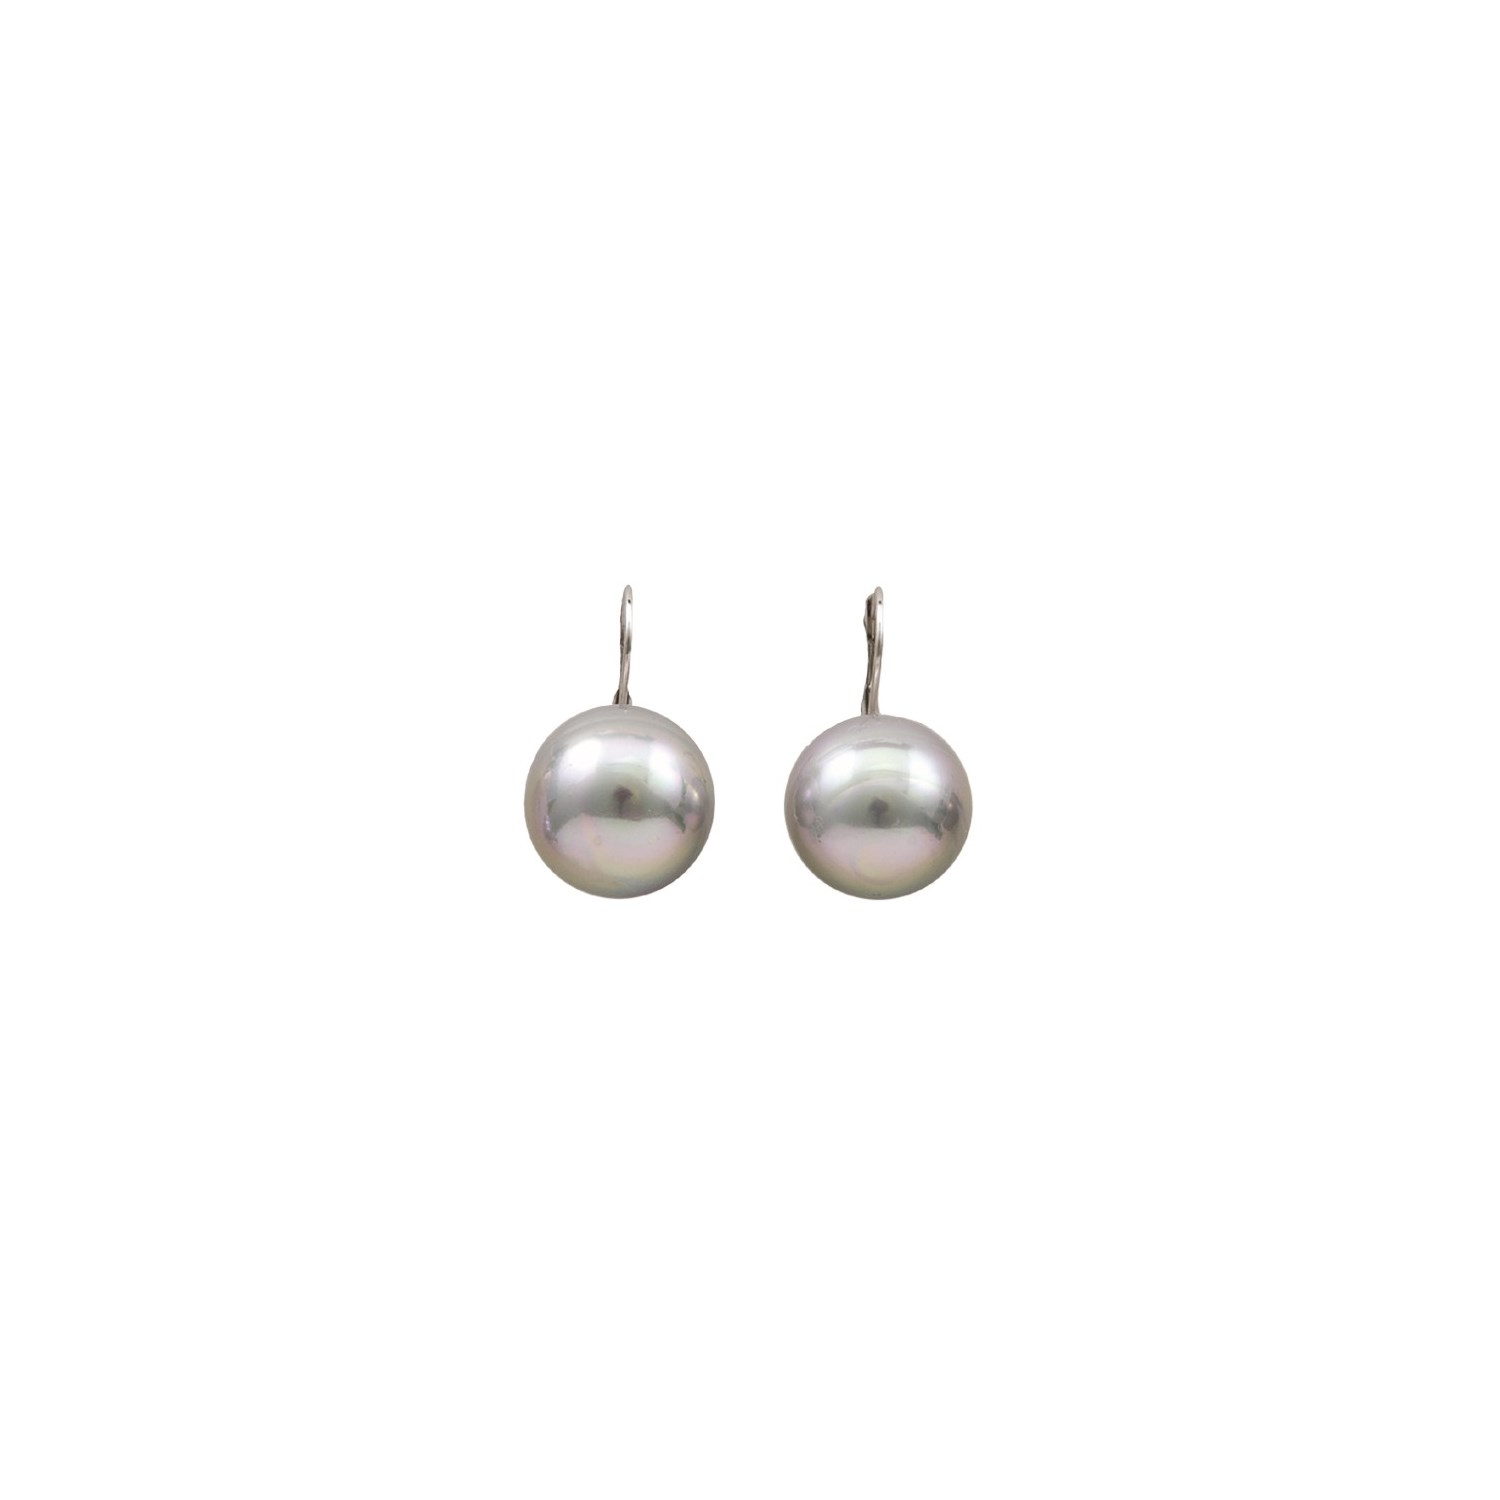 earrings archives pearl product timeless category between cross giant fuchsia gifts